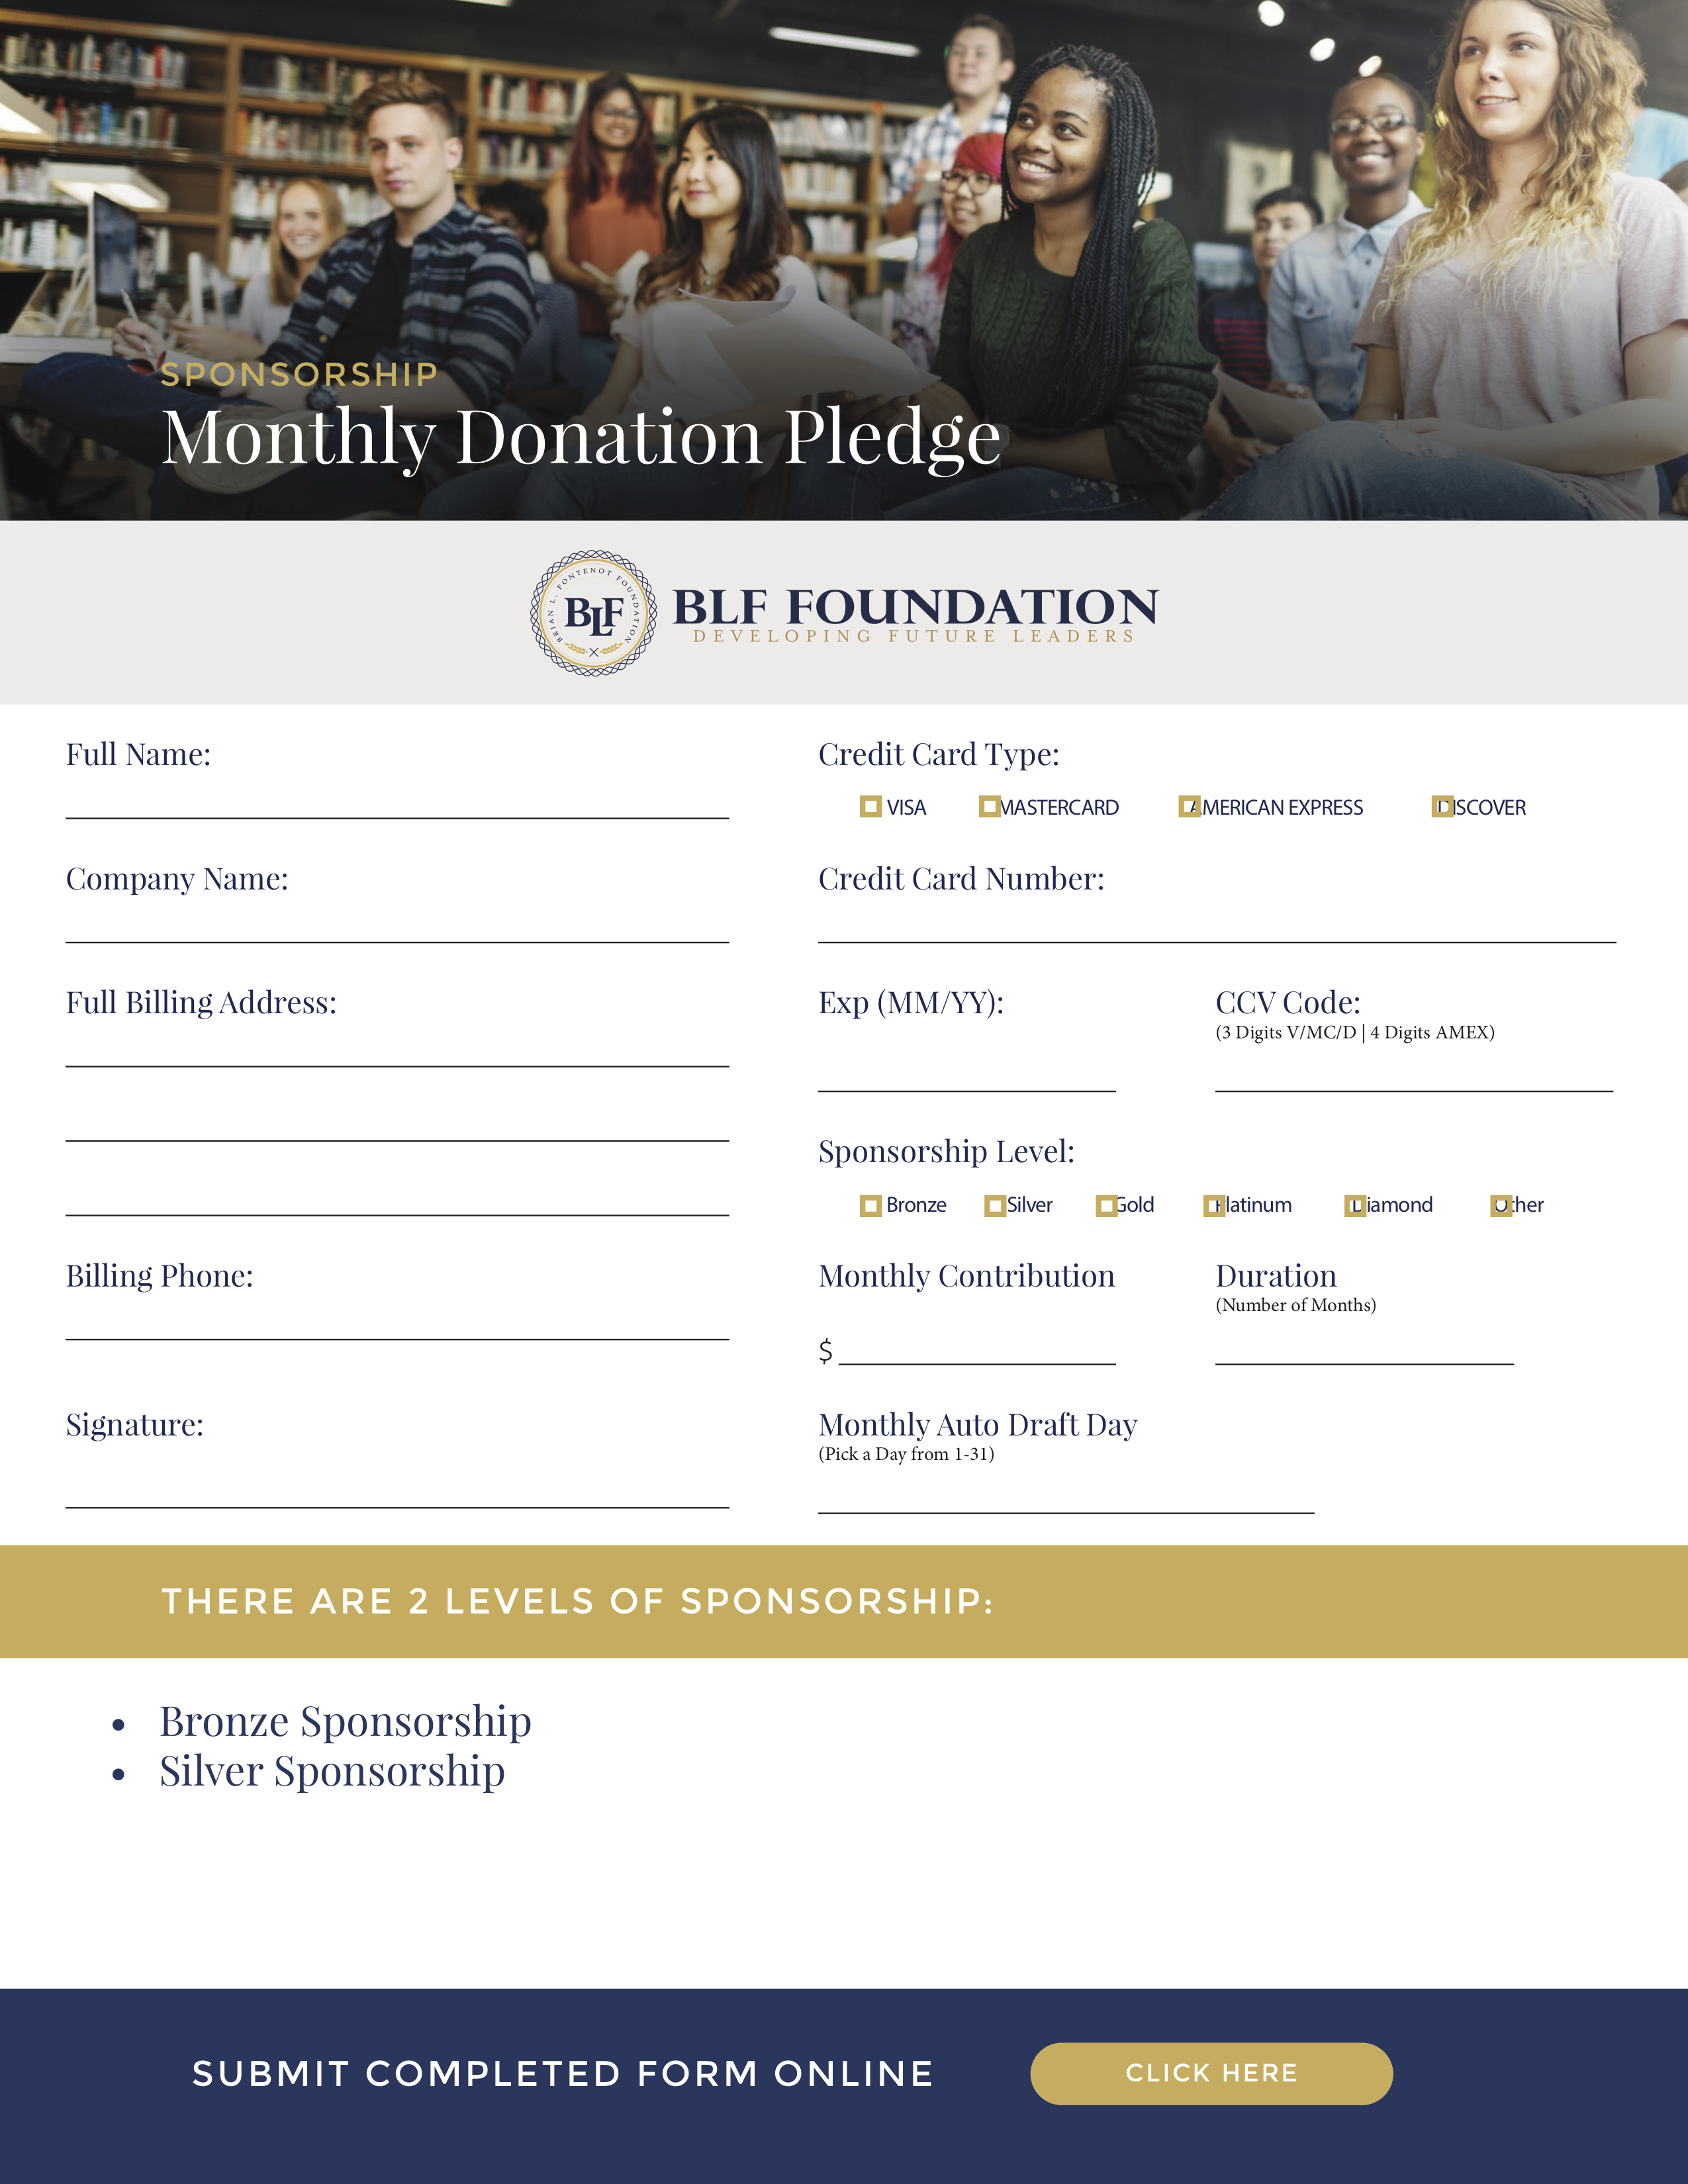 donate monthly to become a sponsor for the blf foundation